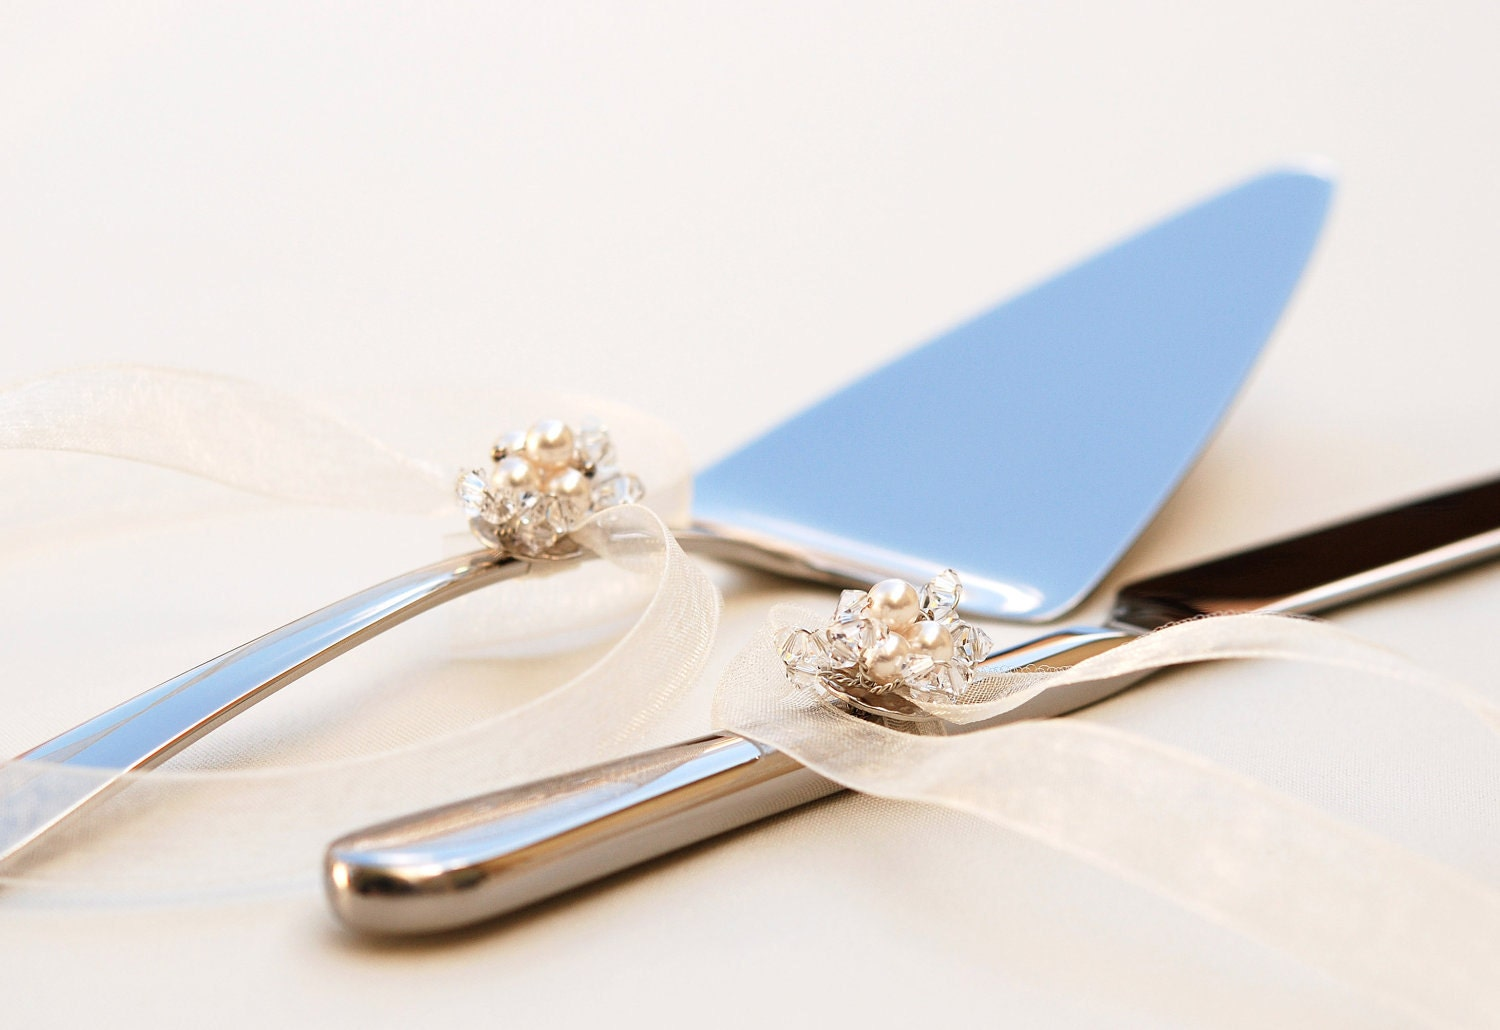 A Vintage Wedding Cake Server And Knife Set With Removable